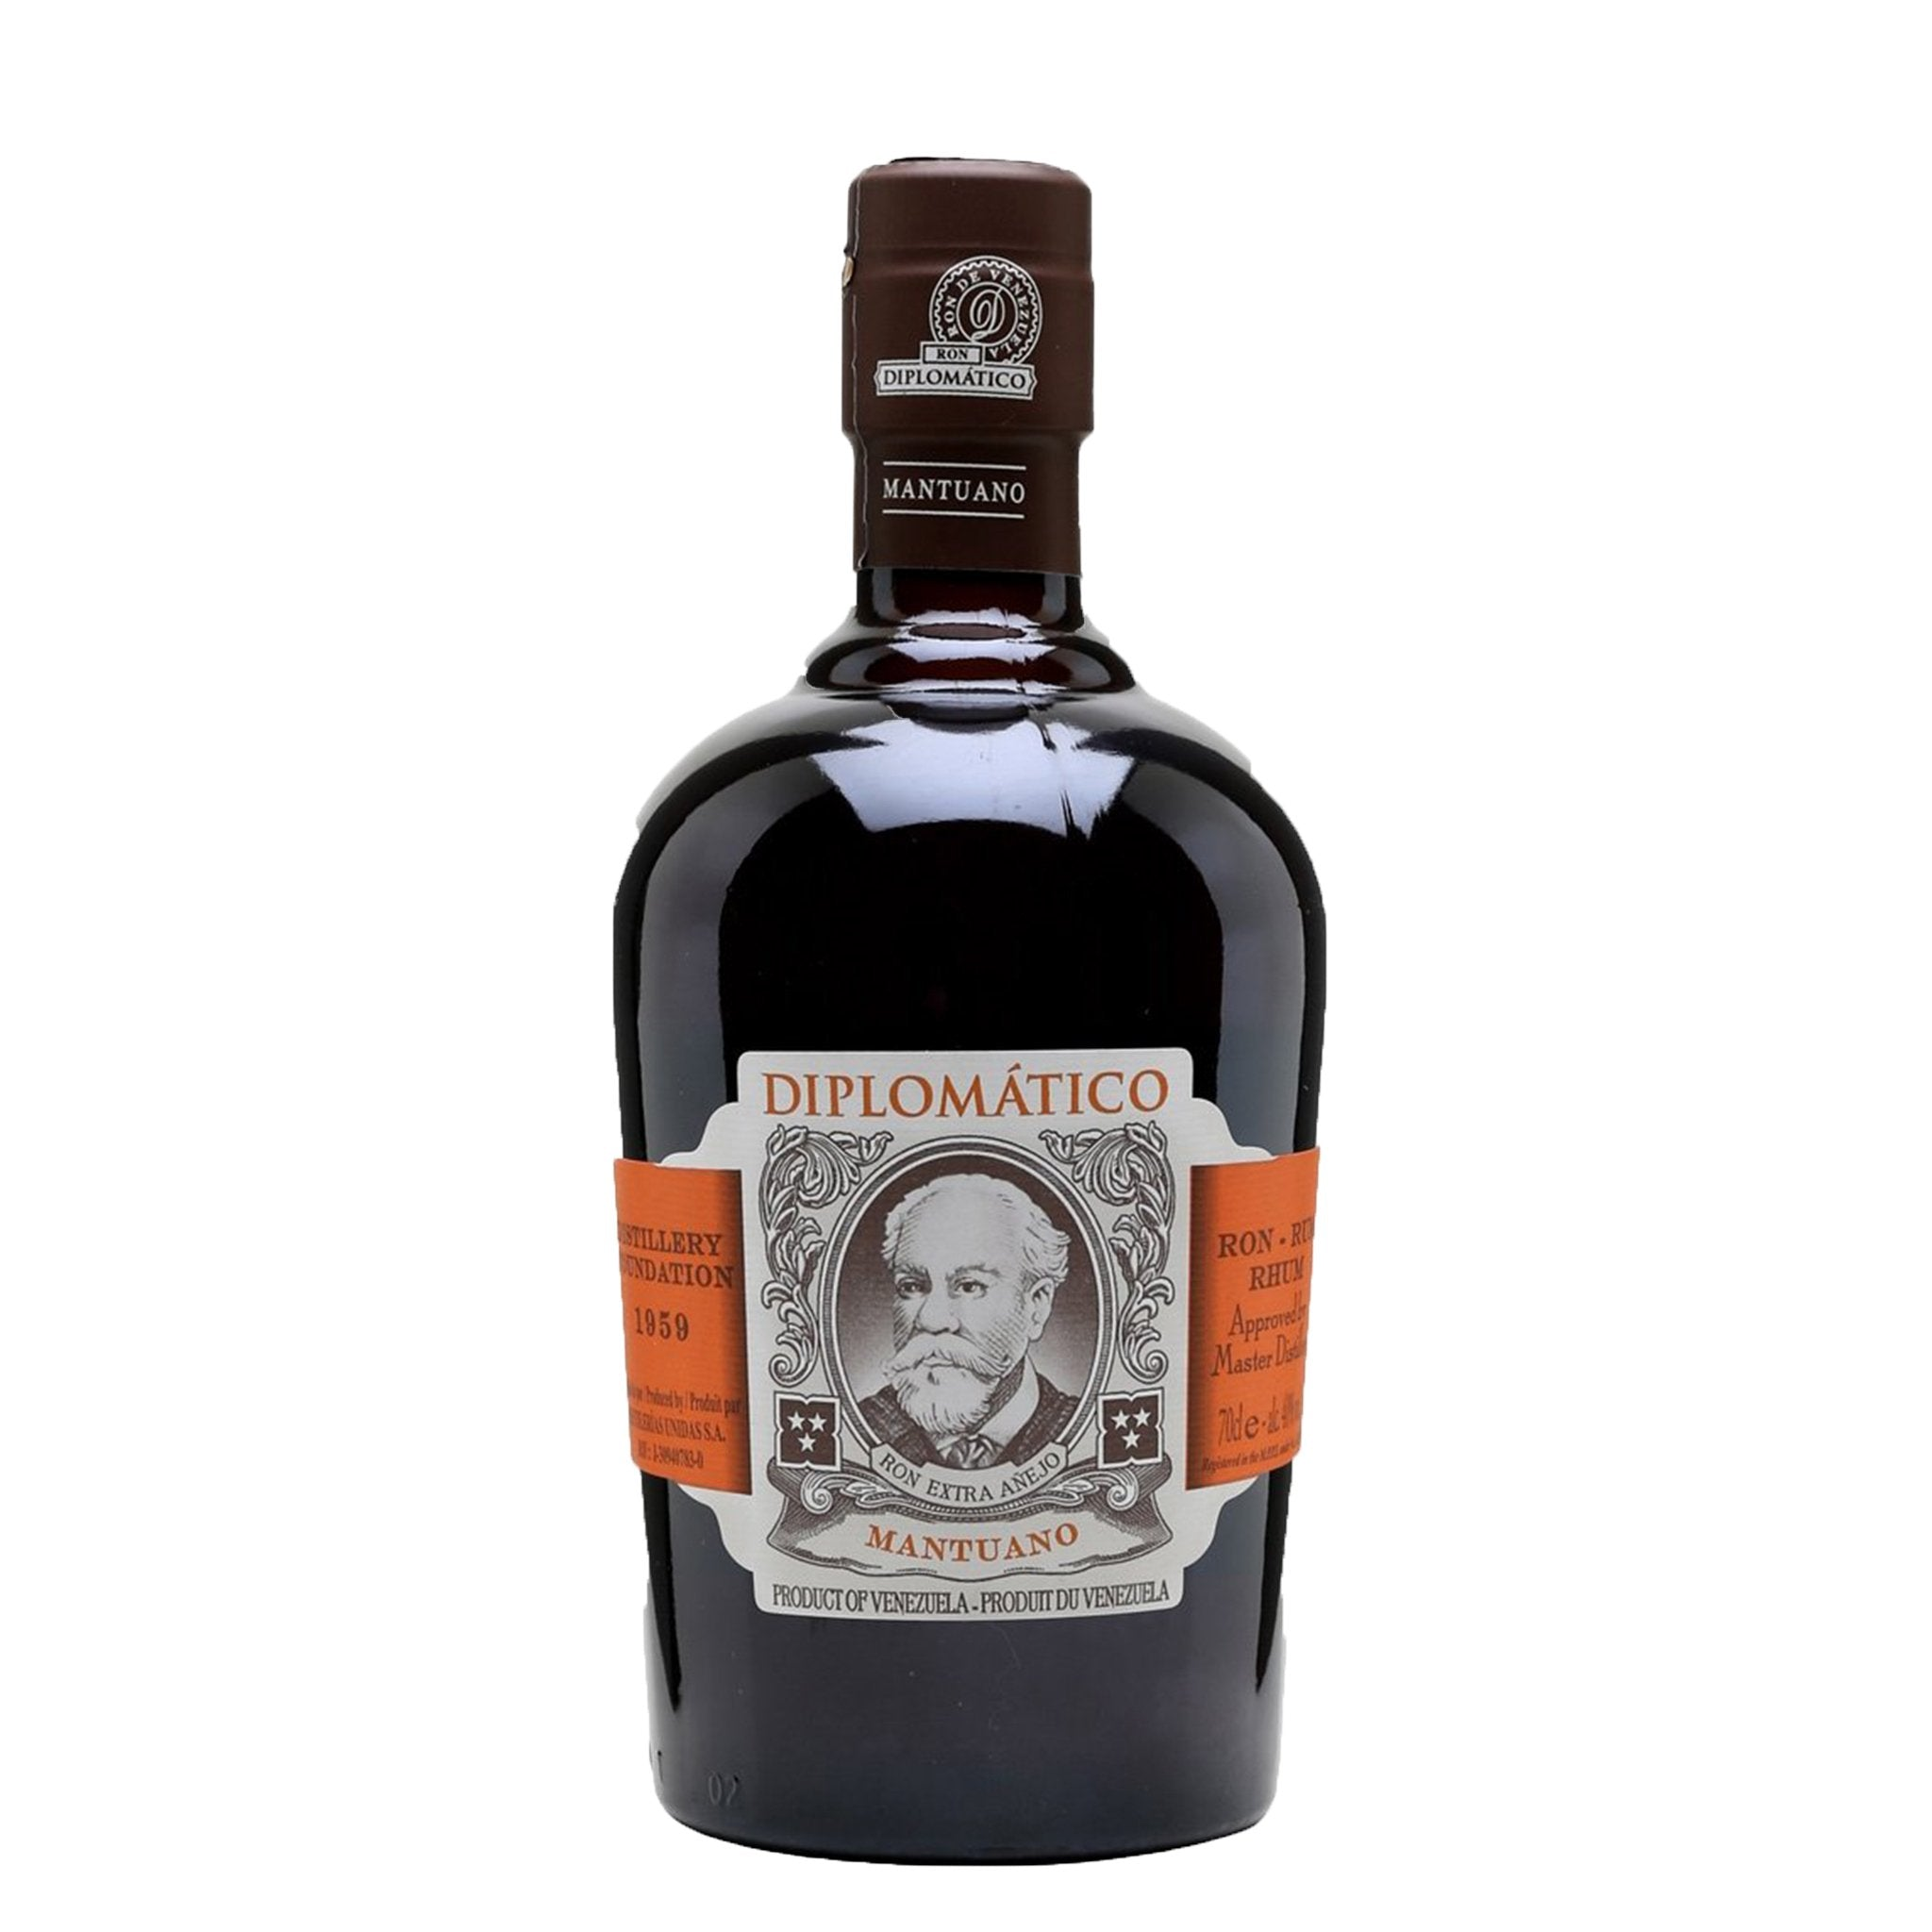 Diplomático Mantuano Rum 70cl, Alcoholic Beverages by Drinks Shop